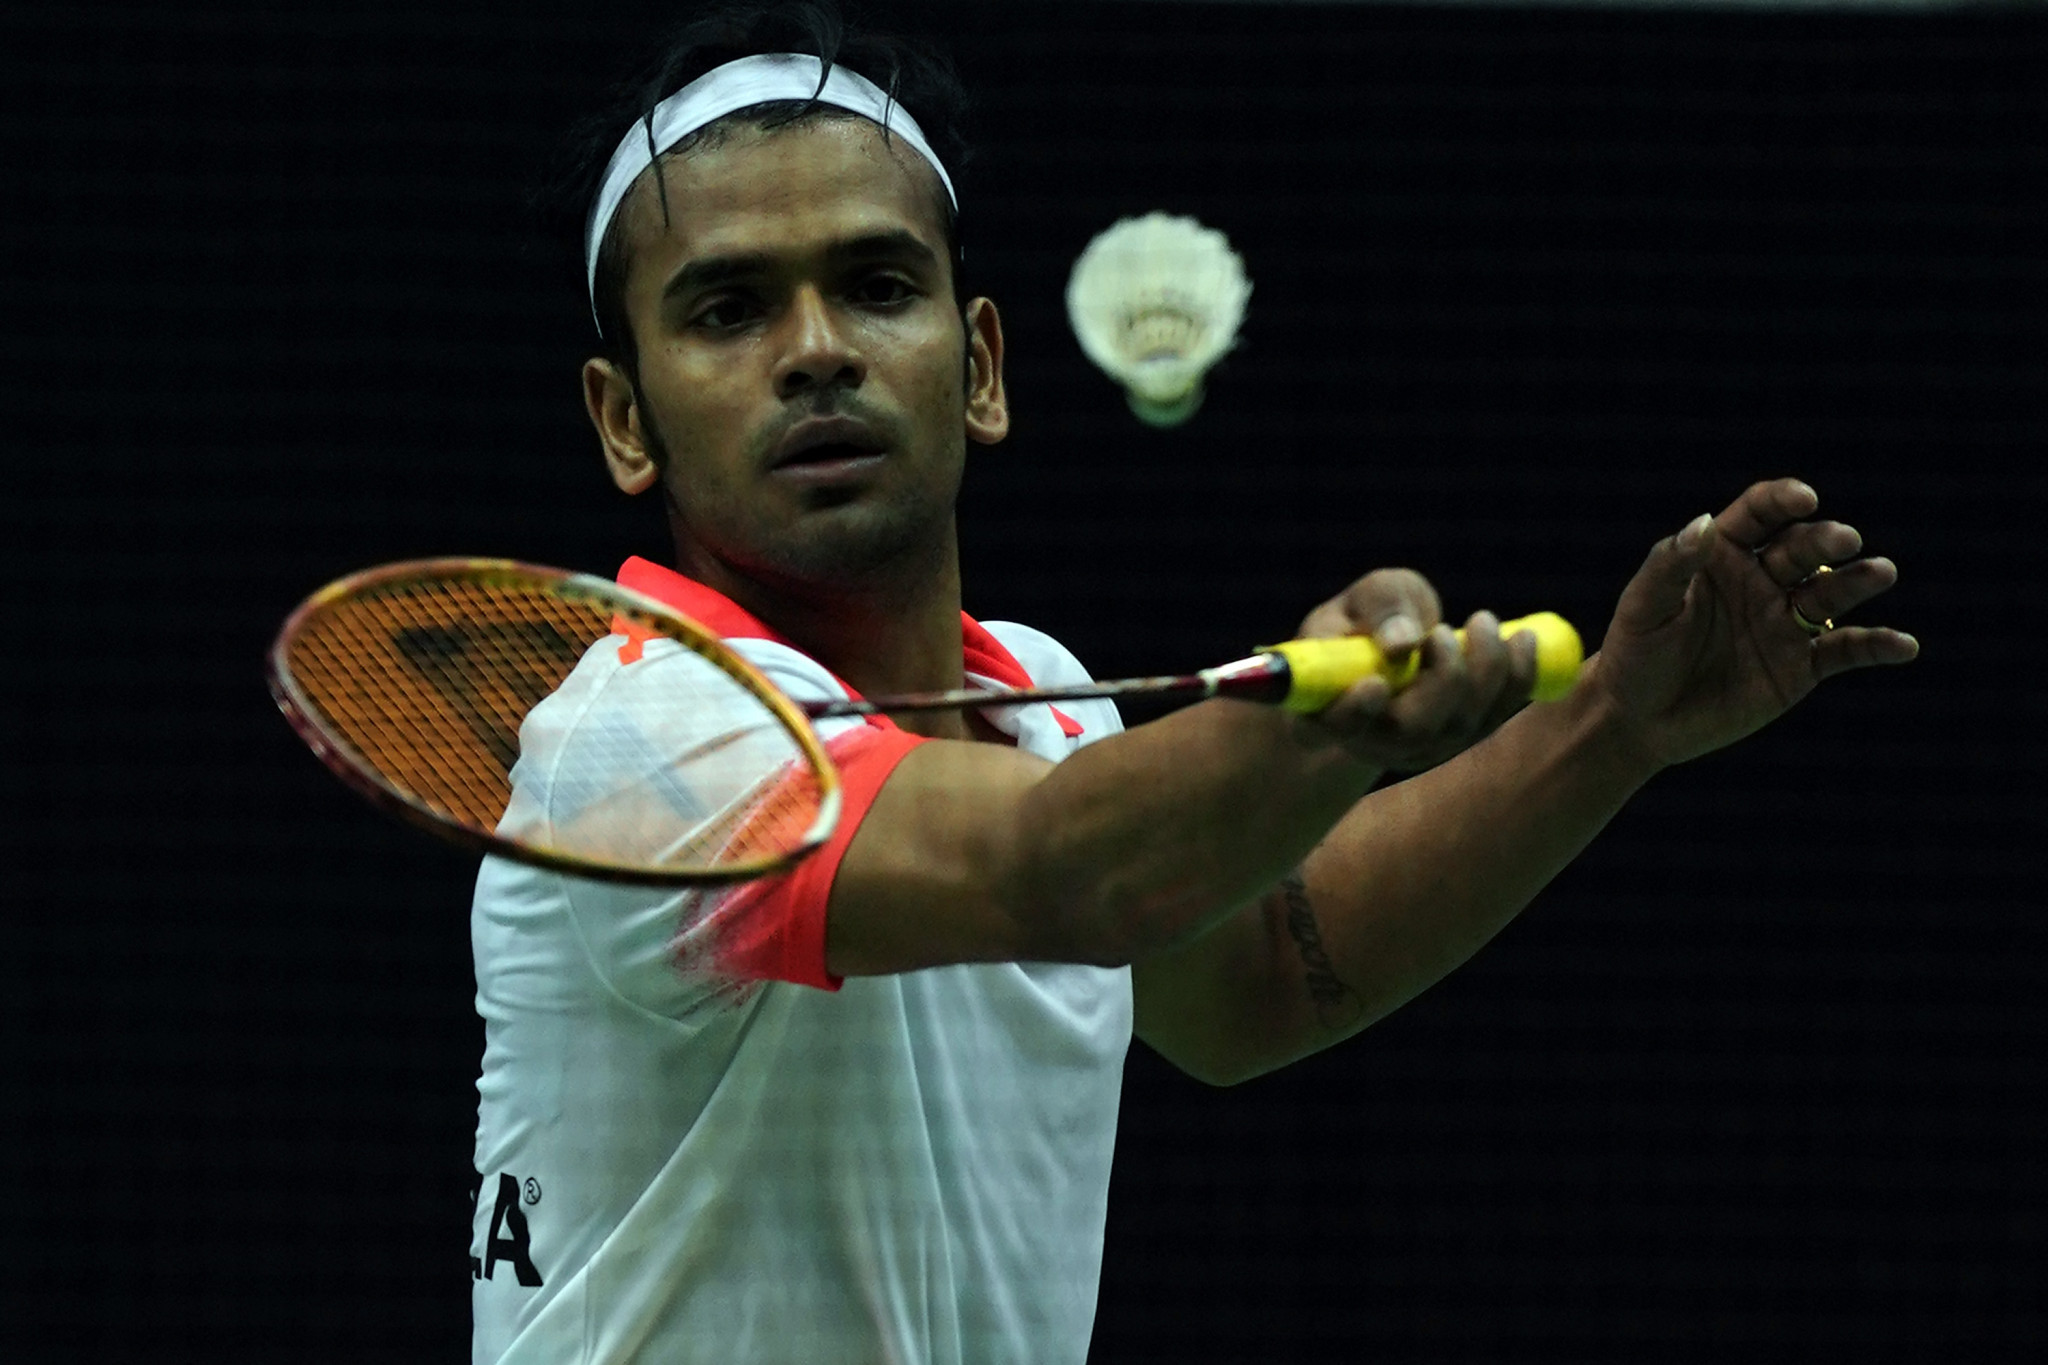 India's Subhankar Dey is the men's singles top seed ©Getty Images